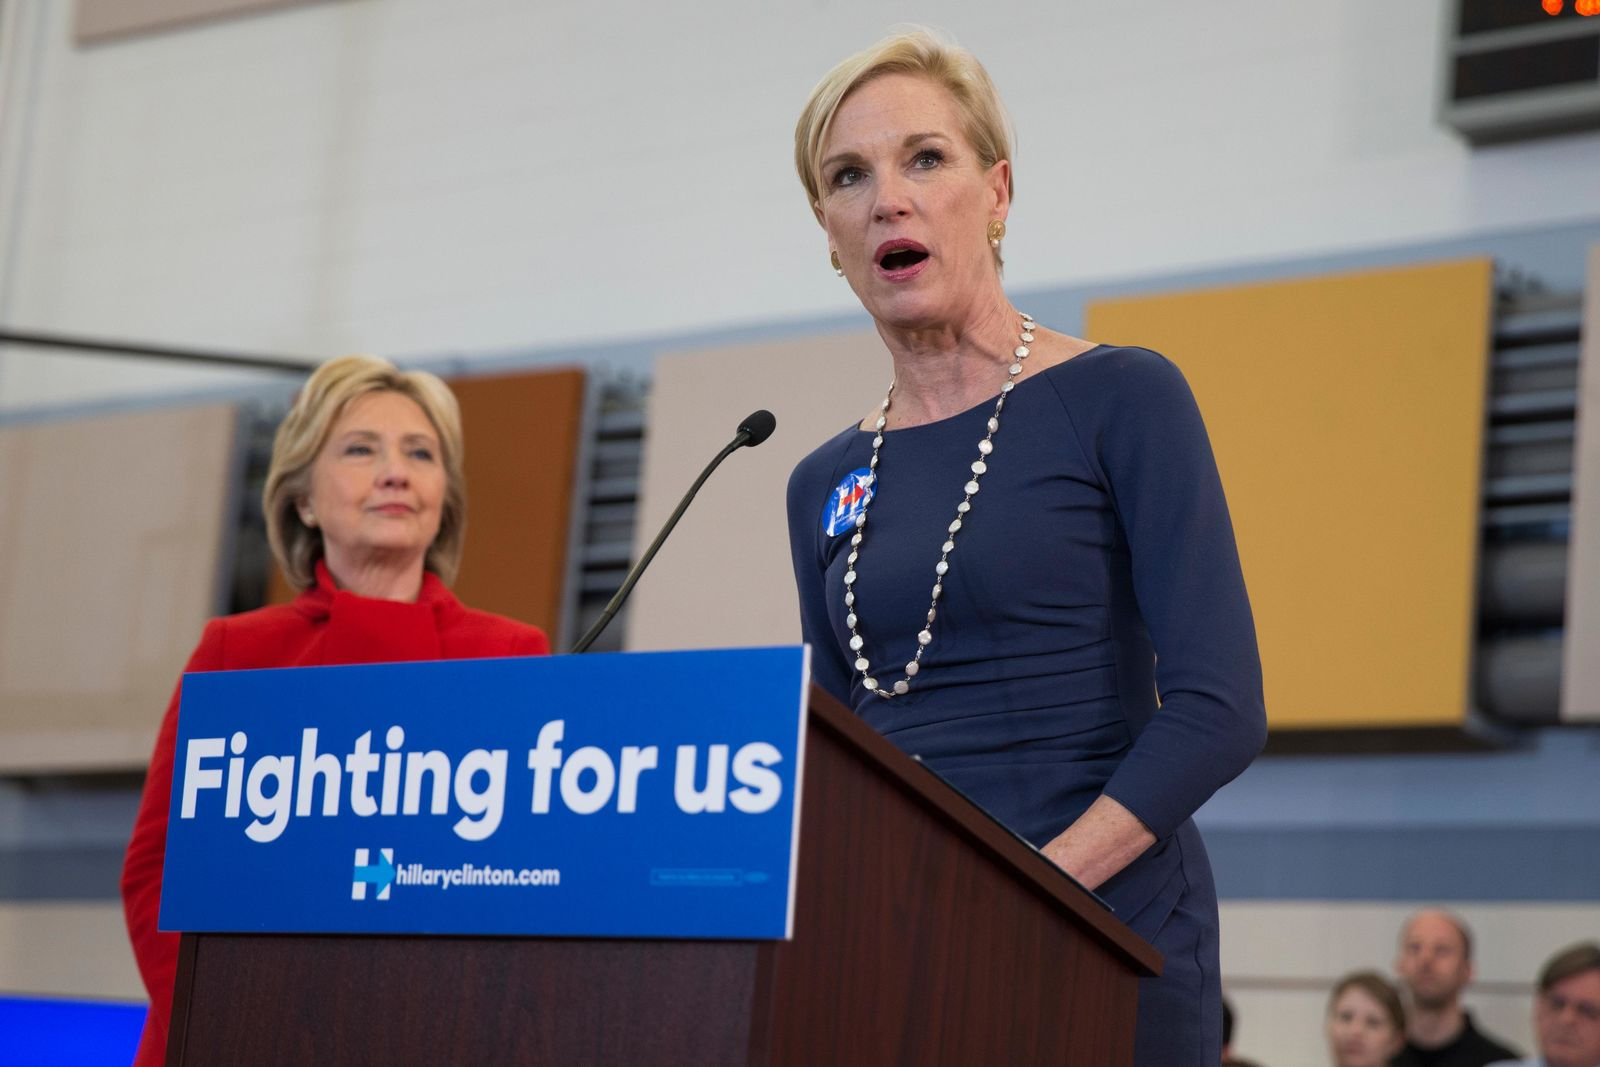 FILE - In this Sunday, Jan. 24, 2016 file photo, Planned Parenthood President Cecile Richards introduces Democratic presidential candidate Hillary Clinton during a campaign rally at Burford Garner Elementary School in North Liberty, Iowa. On Friday, Jan. 26, 2018, Richards, who led Planned Parenthood through 12 tumultuous years, said she is stepping down as its president. (AP Photo/Evan Vucci)